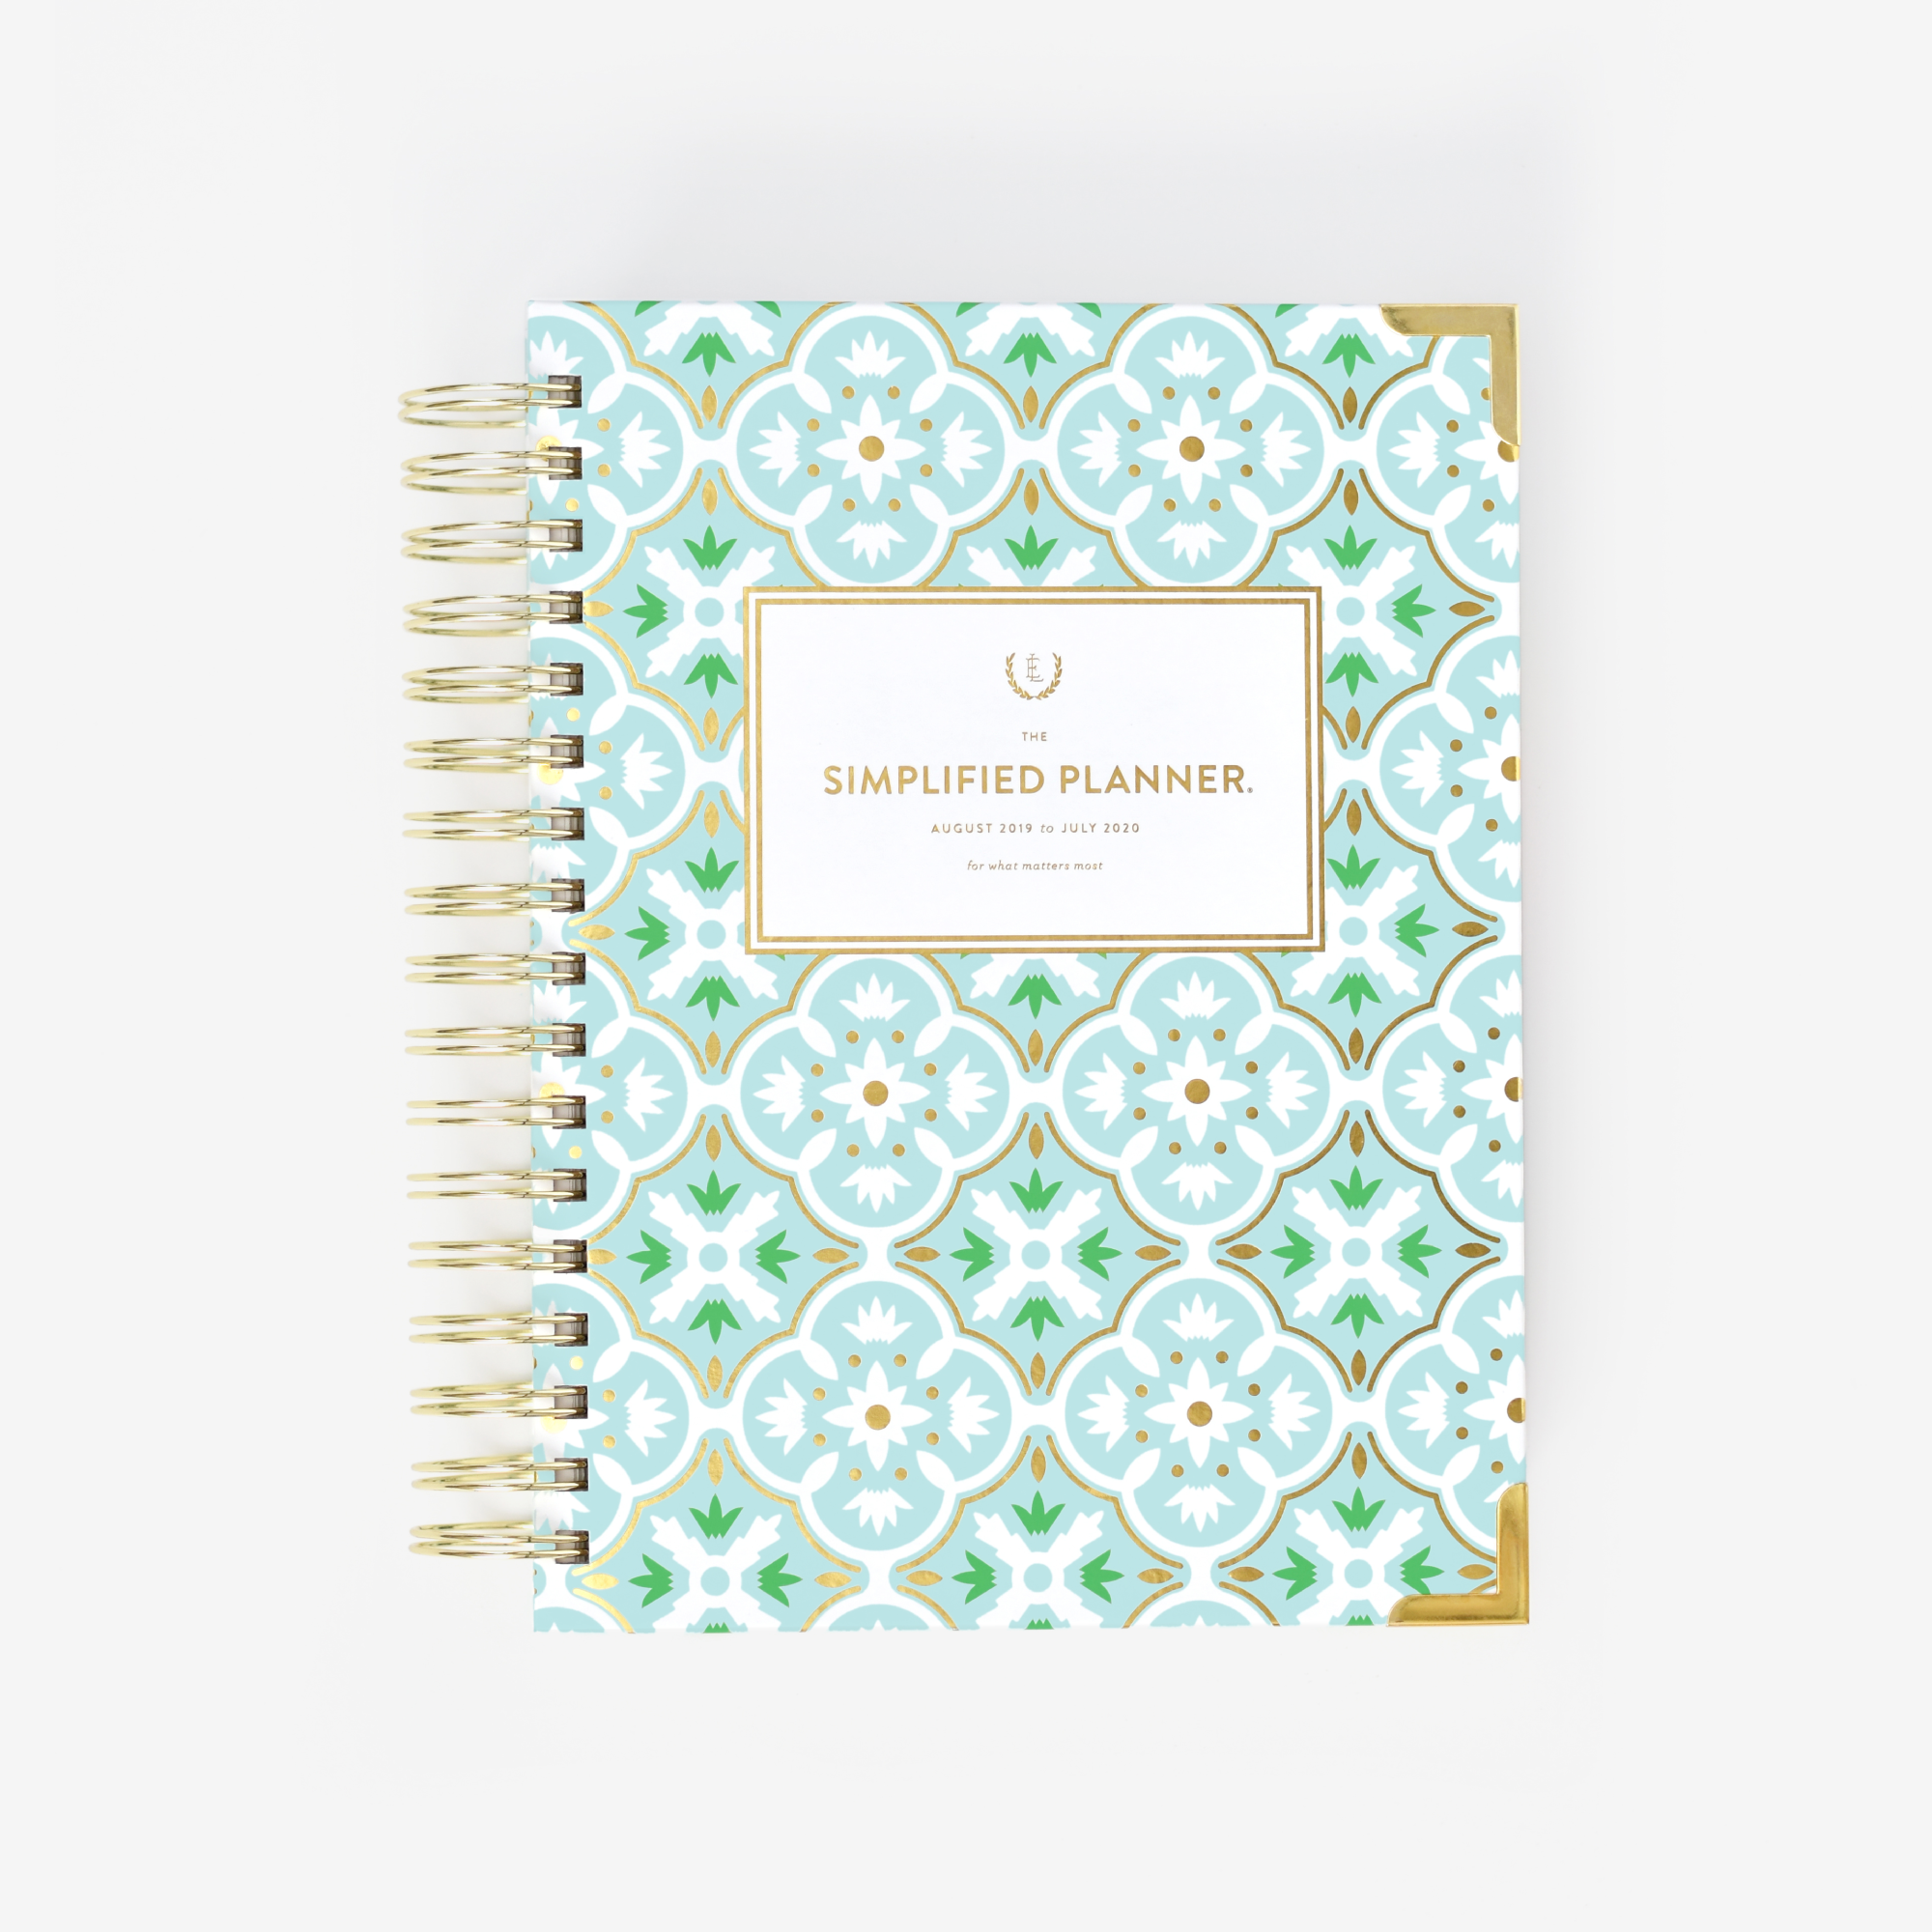 photo regarding Simplified Planner Emily Ley titled 2019-2020 Everyday, Simplified Planner, Mint Tile Goods I